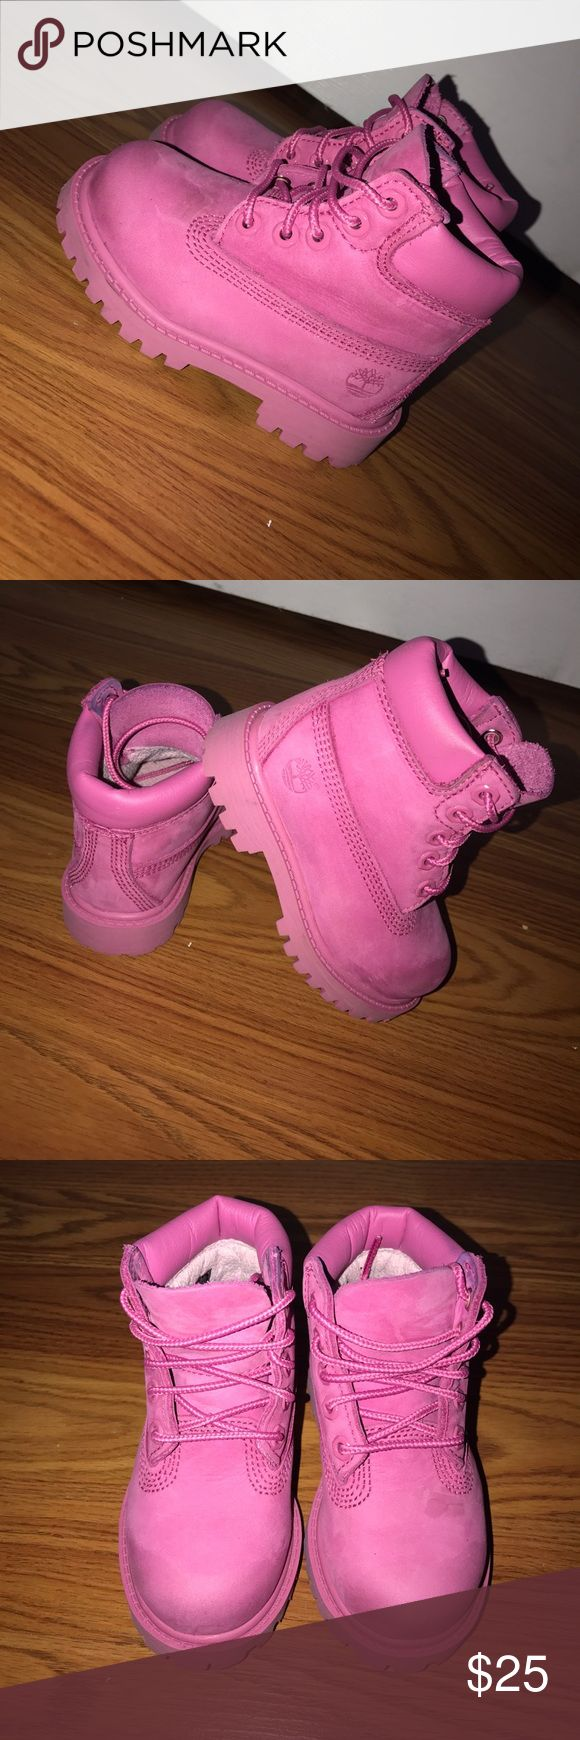 Like new Timbaland Boots Pink Toddler Size 6 Like new Timbaland Boots Pink Toddler Size 6 Shoes Boots